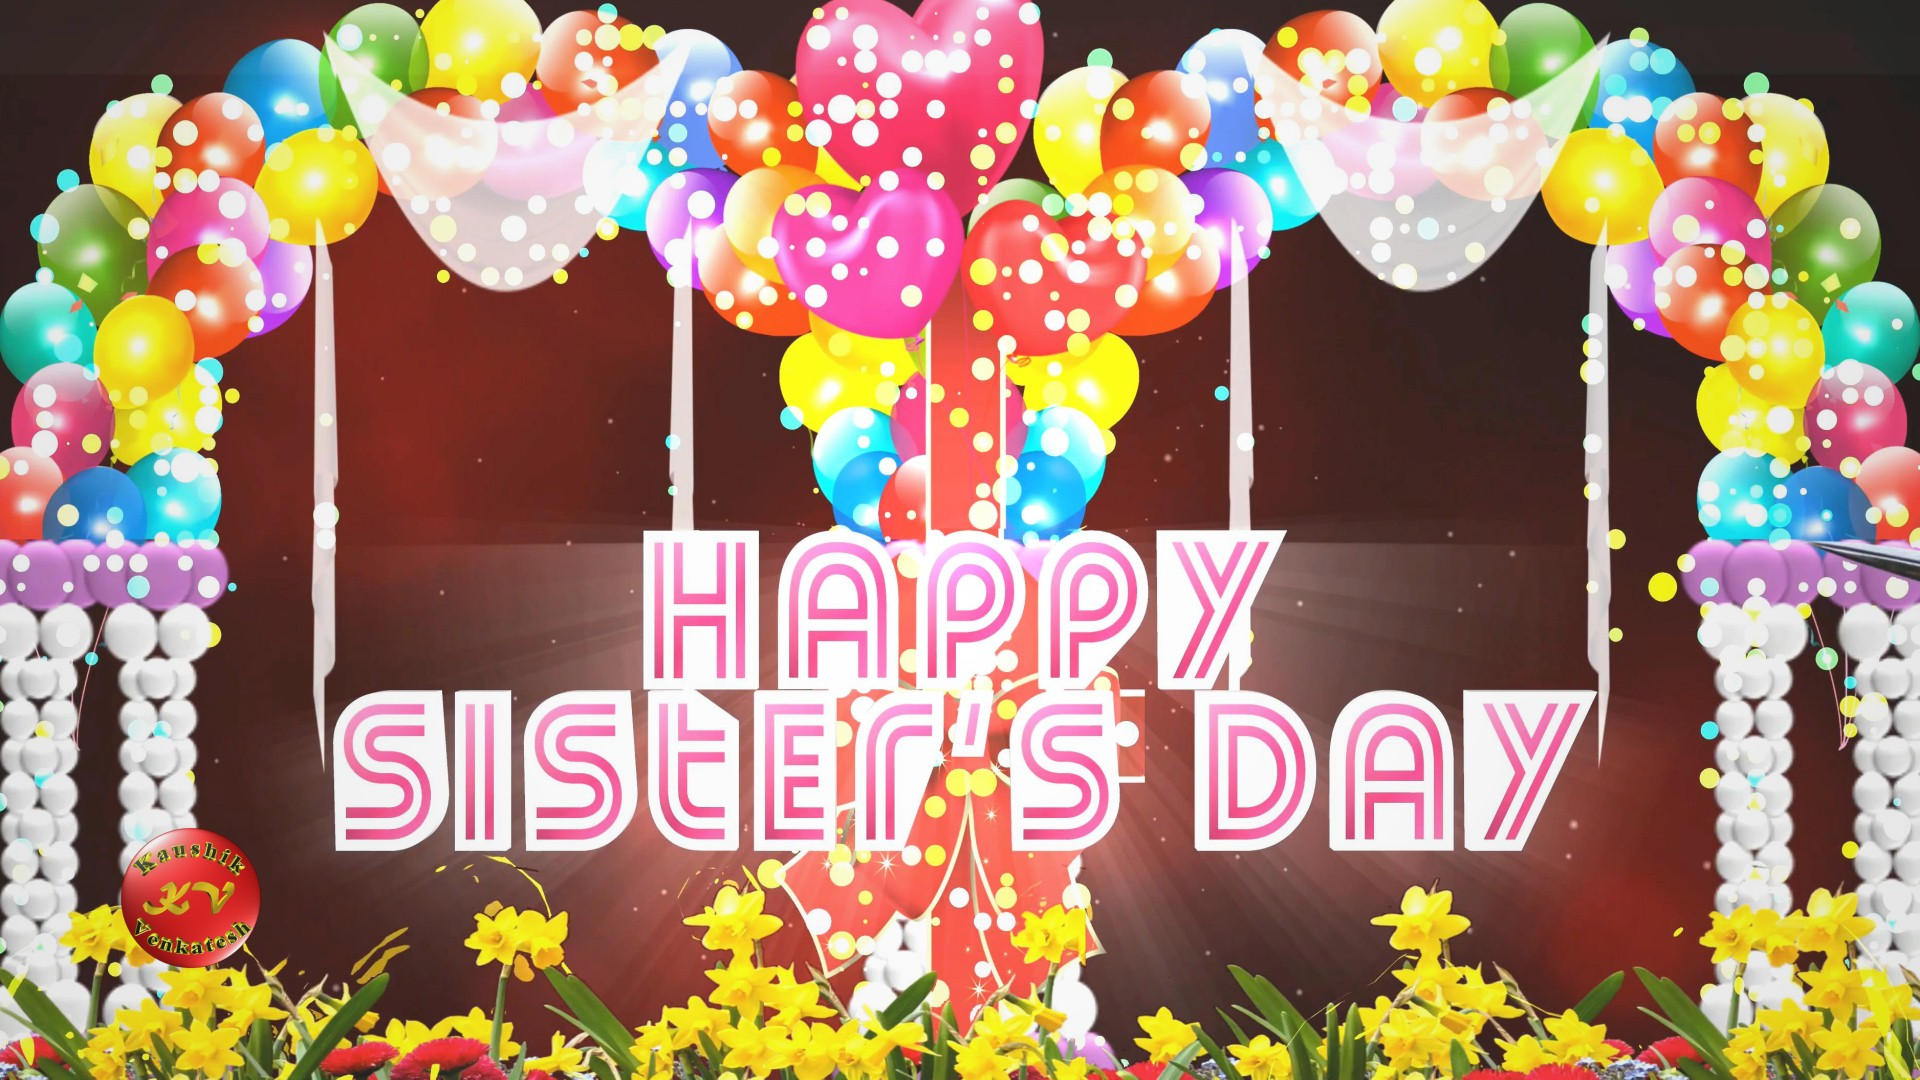 Image of Happy Sisters Day 2021 Greetings